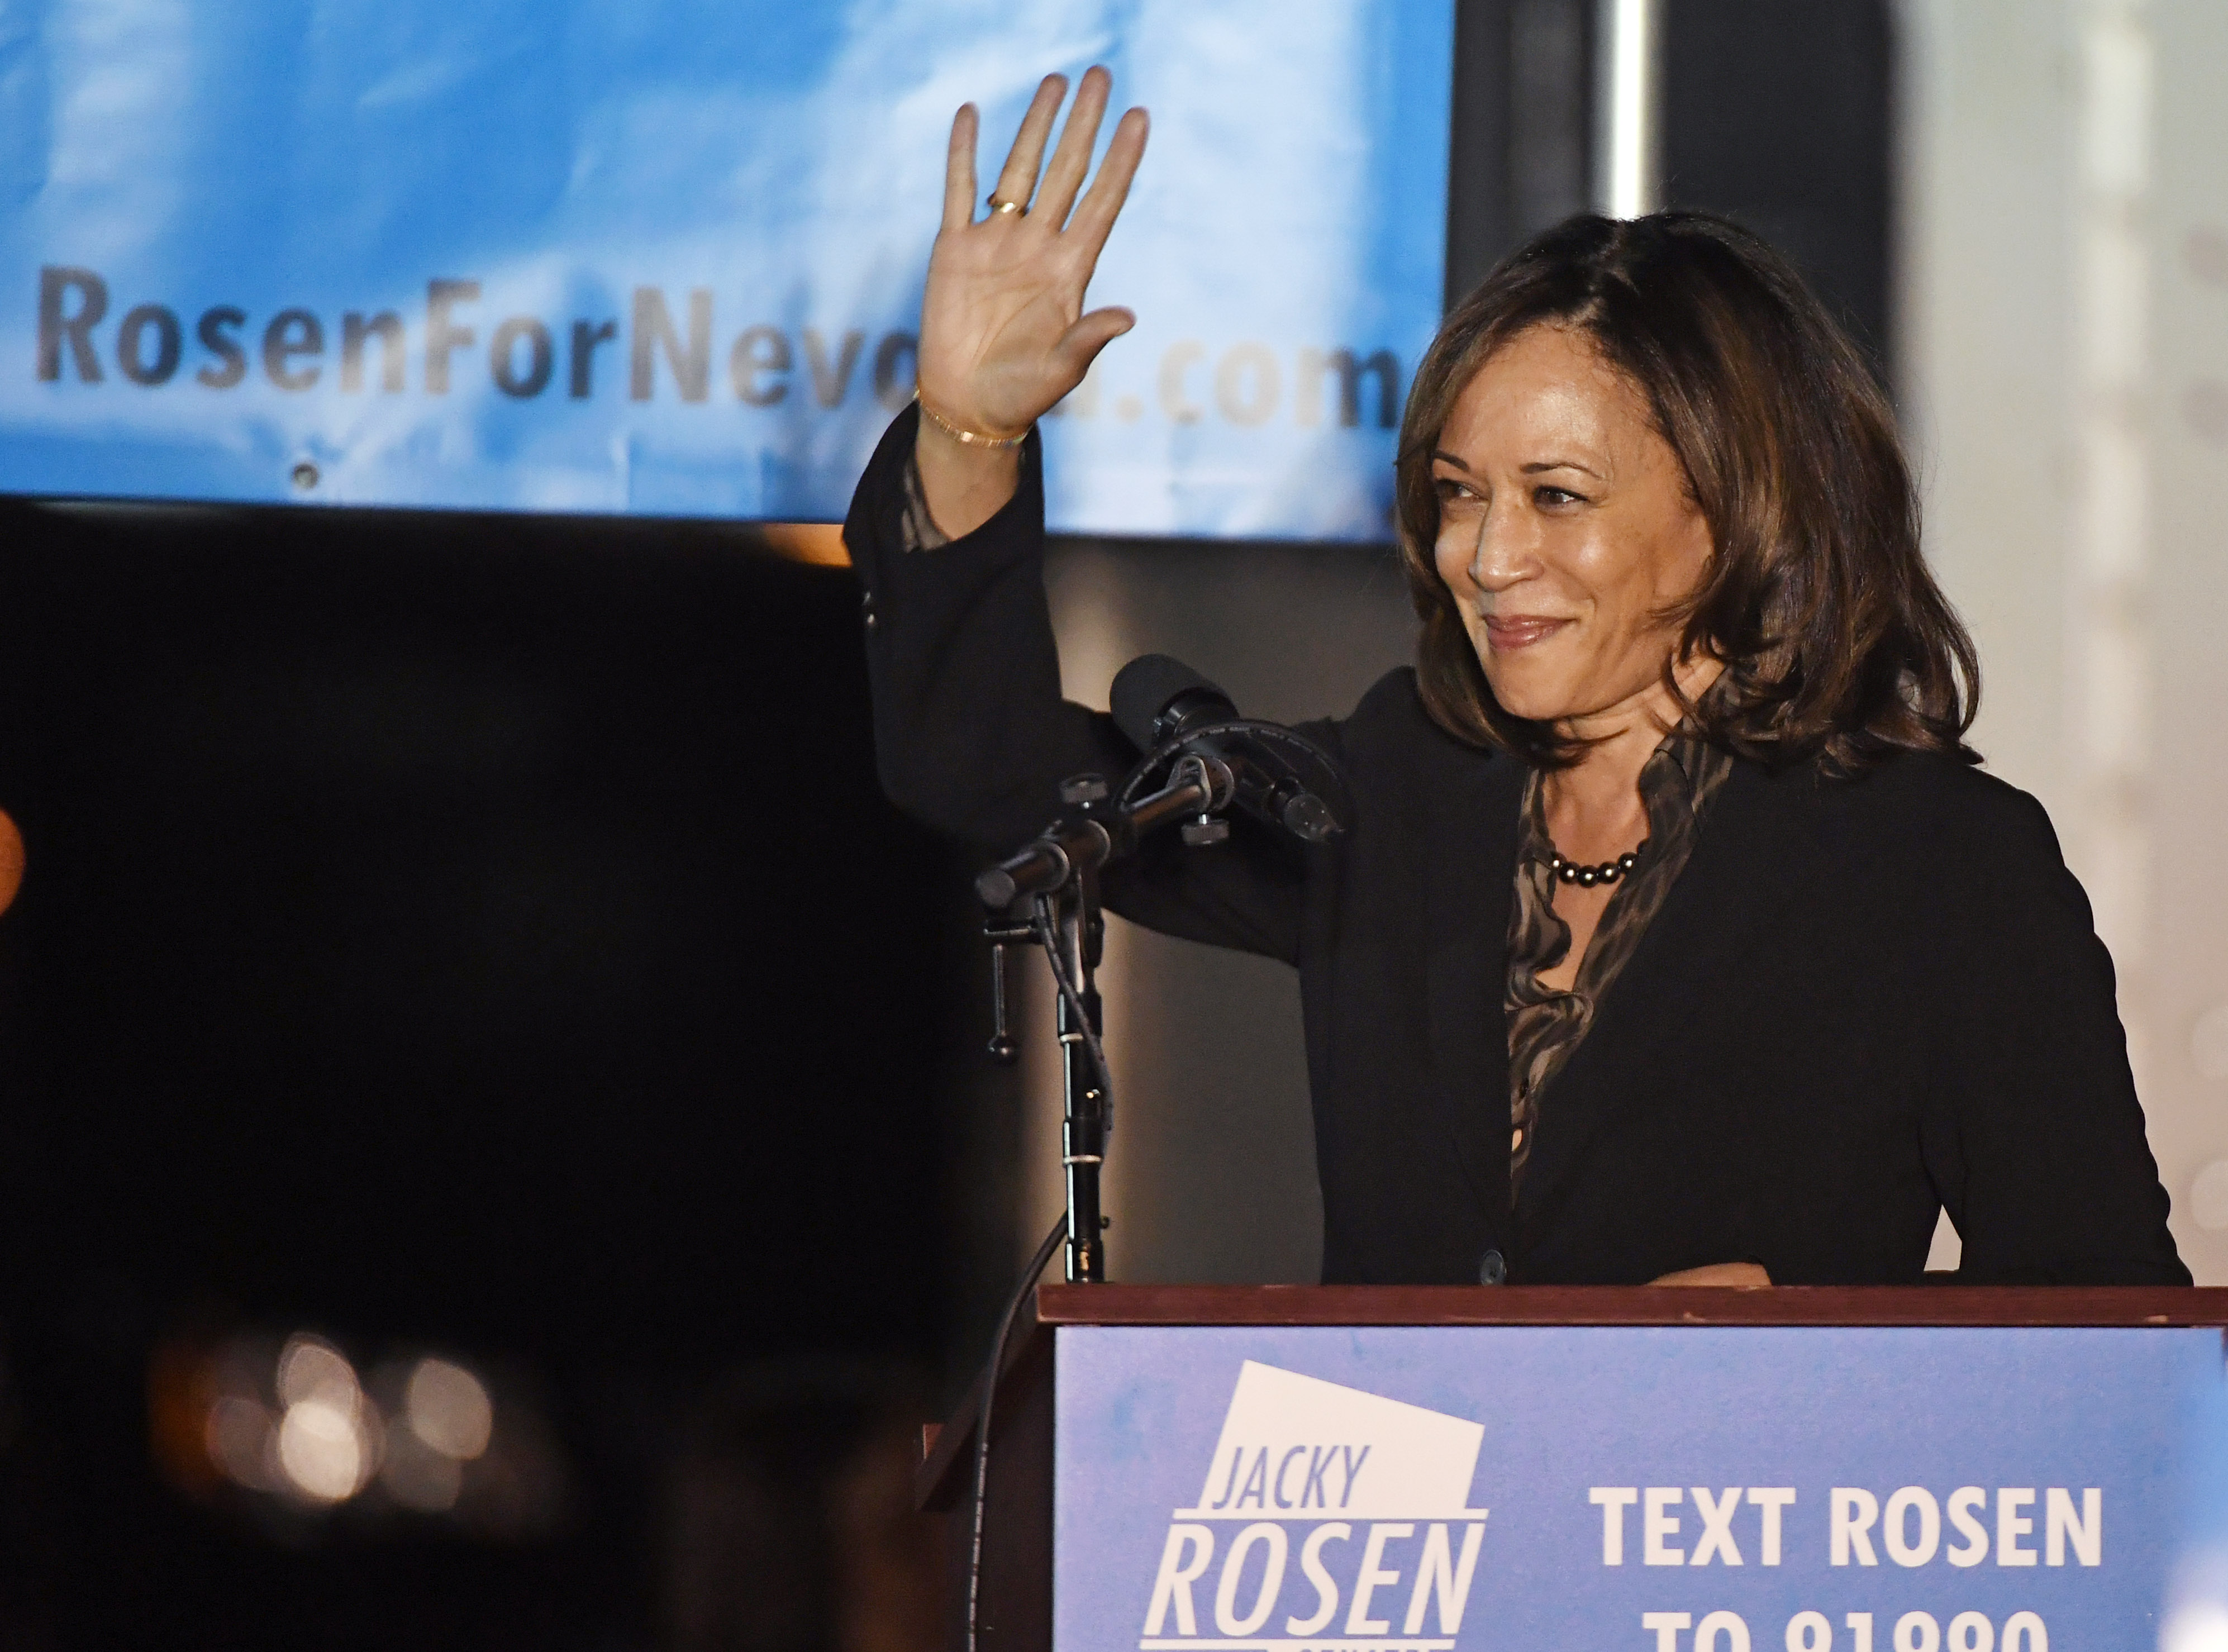 U.S. Sen. Kamala Harris speaks at a get-out-the-vote rally in support of Jacky Rosen at First Friday as Harris campaigns for Nevada Democratic candidates. (Ethan Miller/Getty Images)